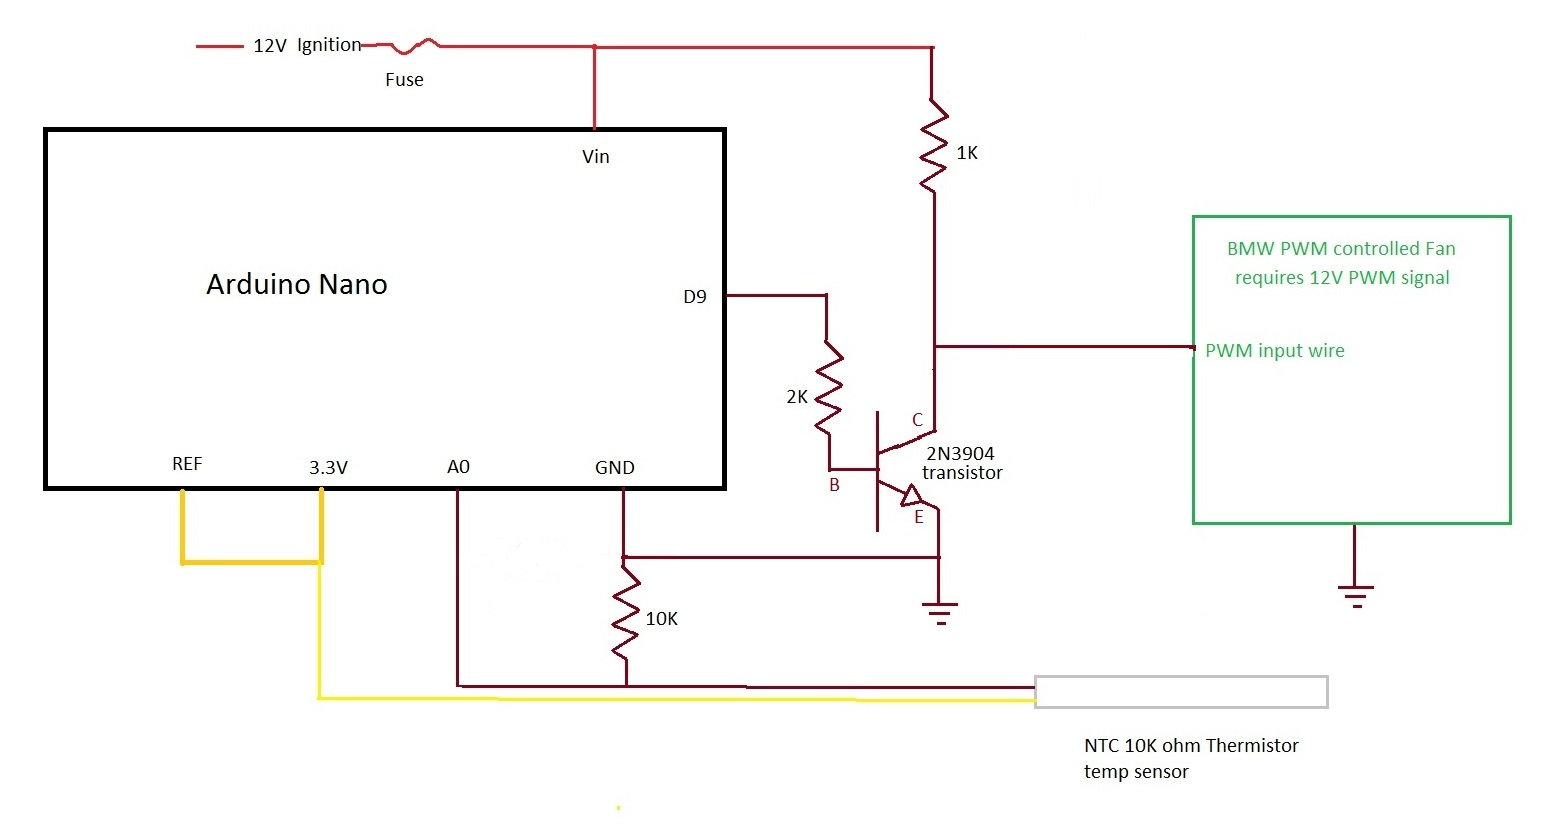 Variable Speed Pwm Fan Control Under  25 Or Less Diy - Page 10 - Ls1tech